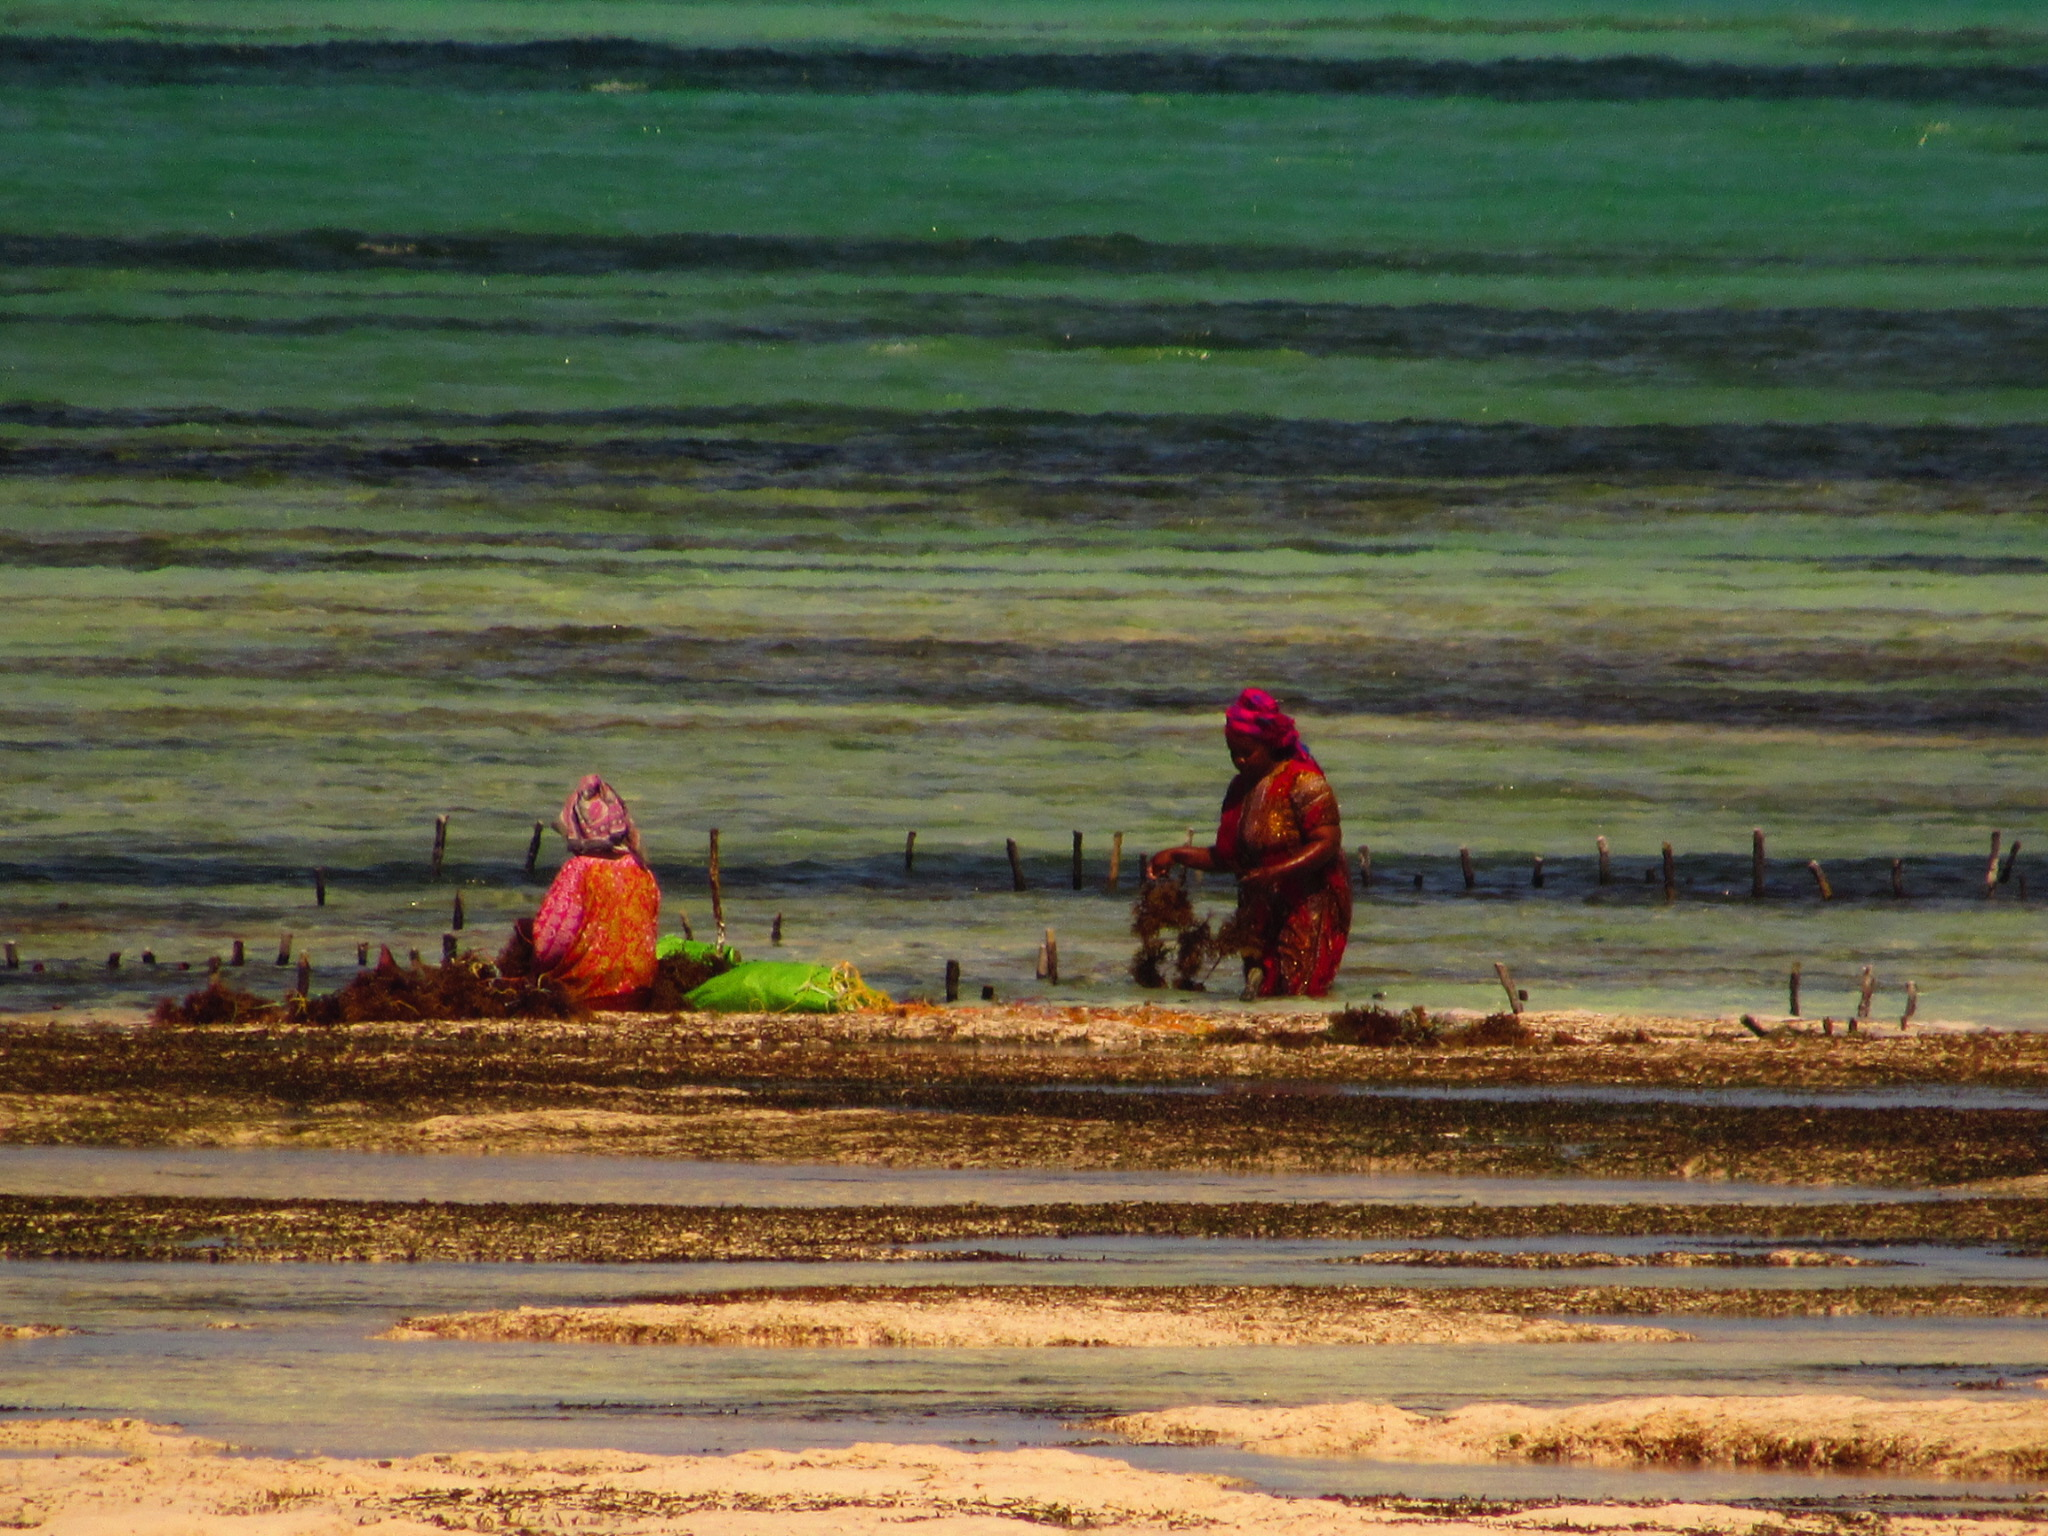 Women working in the seaweed farm on Jambiani Beach in Zanzibar, Tanzania